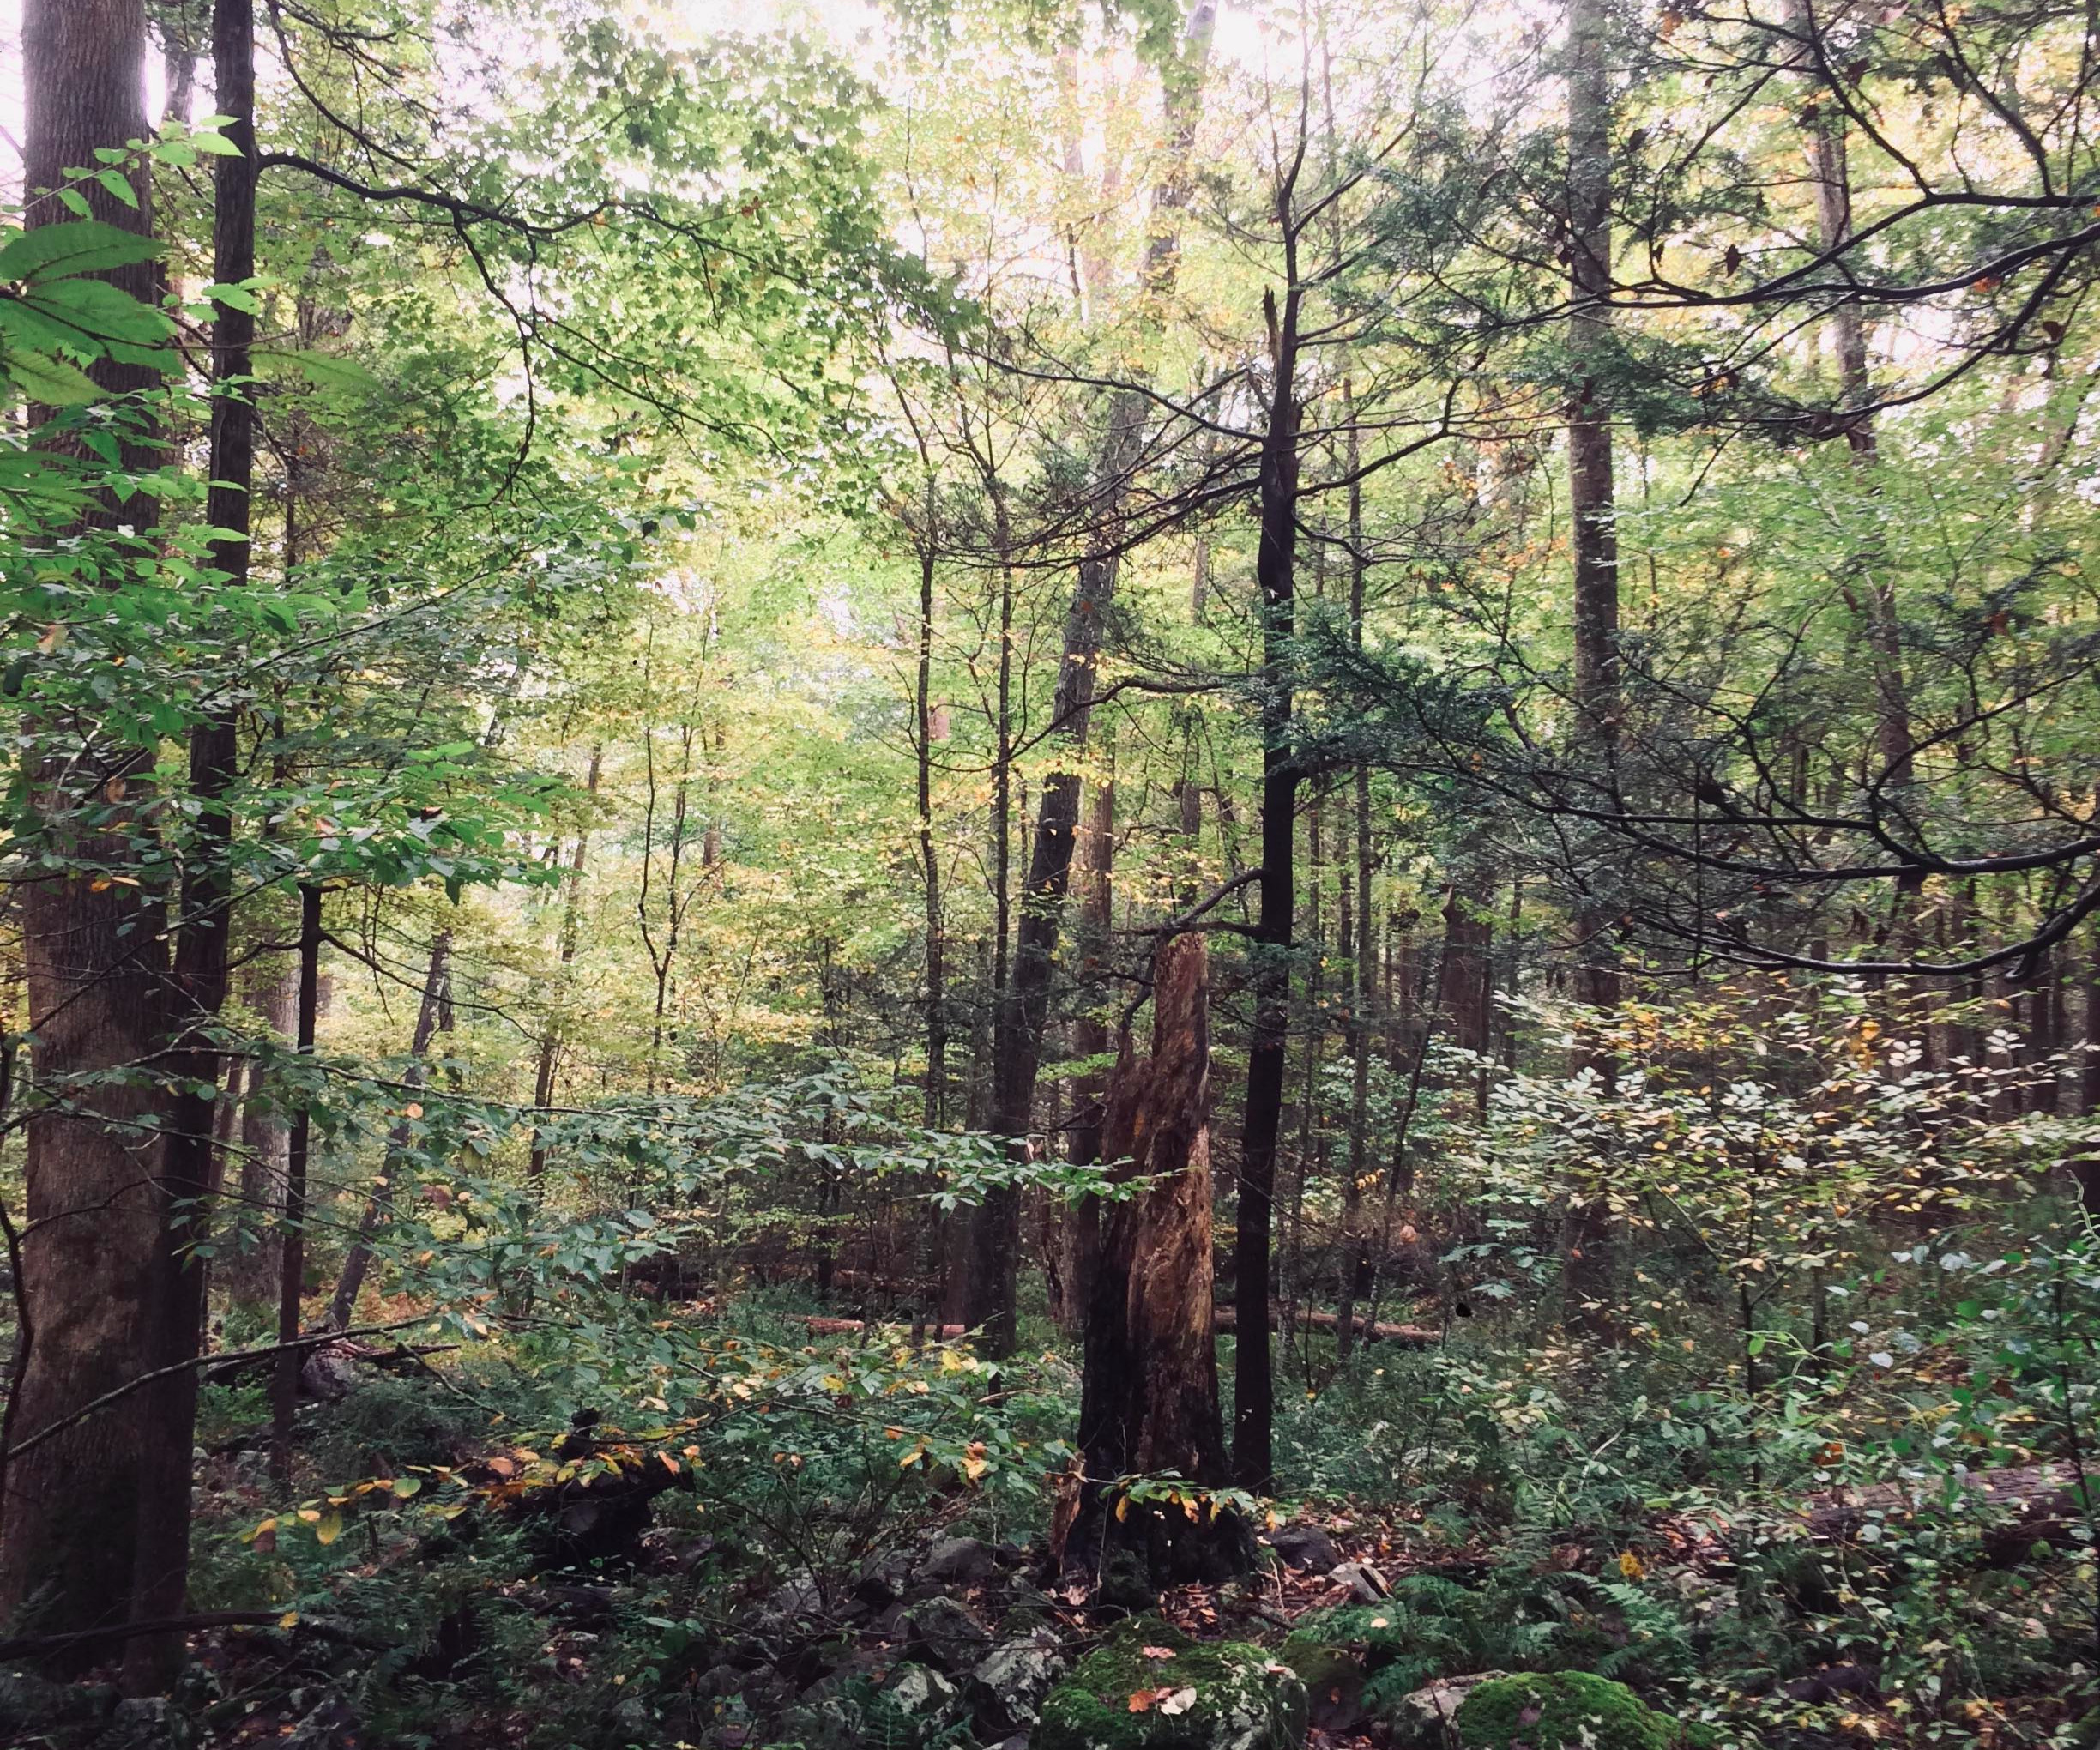 Some of the trees are not resistant, and hemlock woolly adelgid is very much present at the site